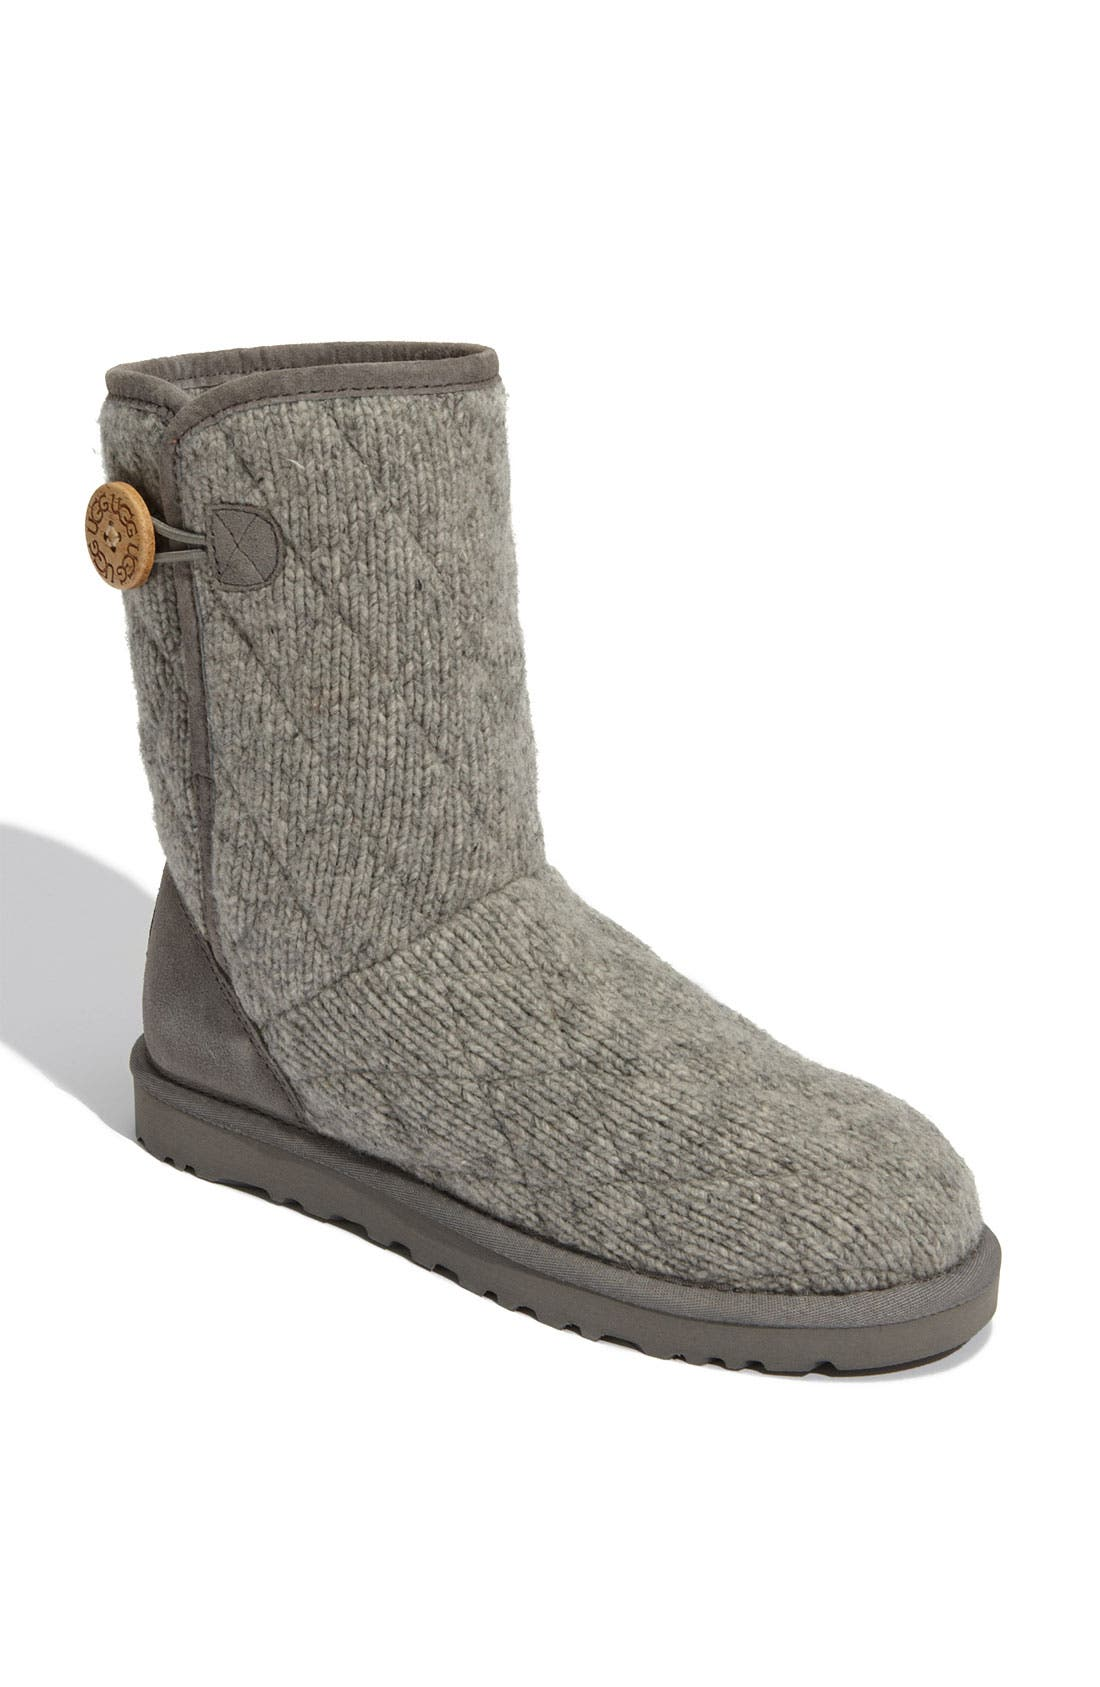 Alternate Image 1 Selected - UGG® Australia 'Mountain' Quilted Boot (Women)